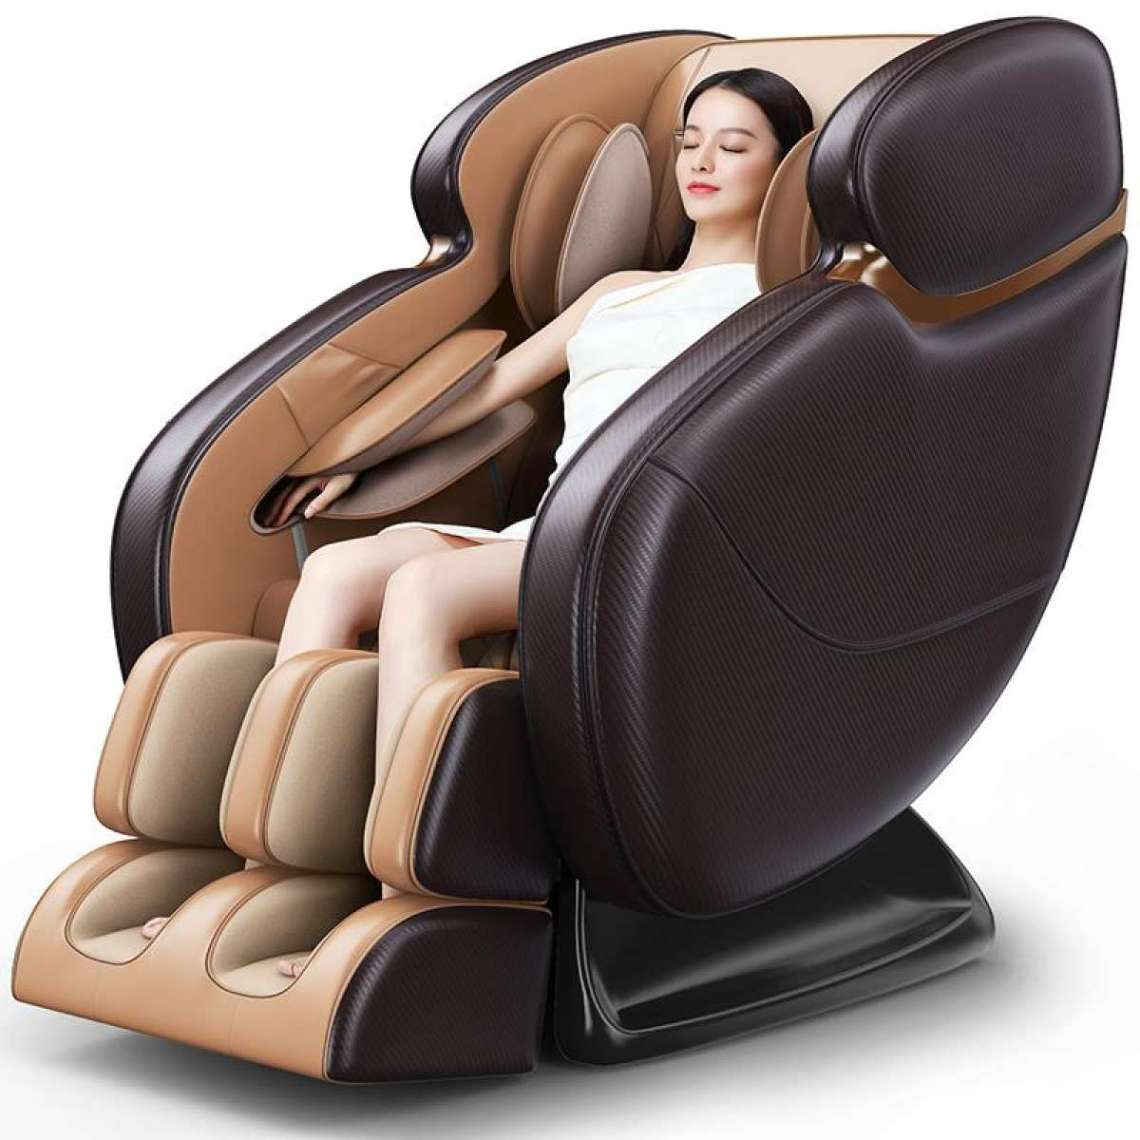 Macy 4D Massage Chair Philippines